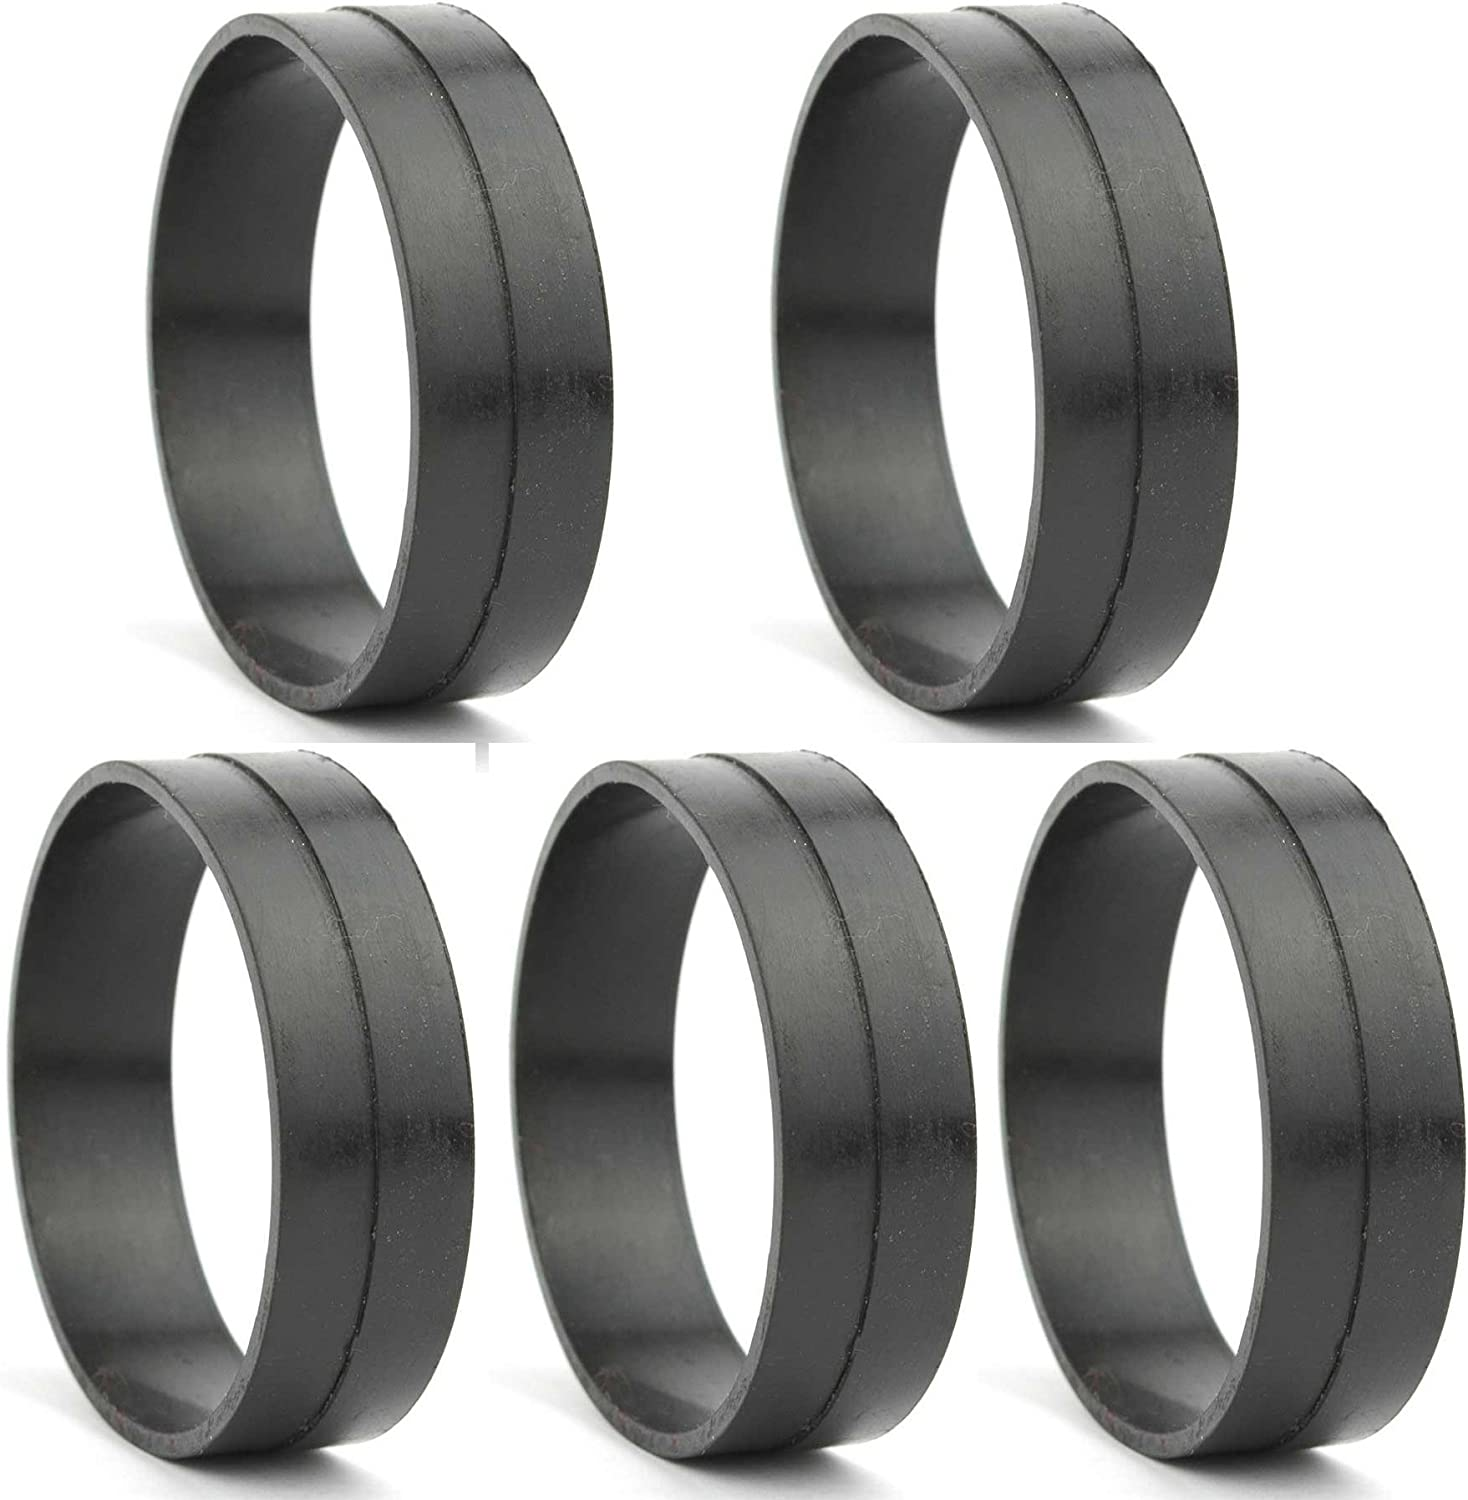 AeroPro 877-317 Aftermarket Cylinder Ring for Hitachi NR83A NR83A2 NR83A3 NR90AD Framing Nailers 5 per pack